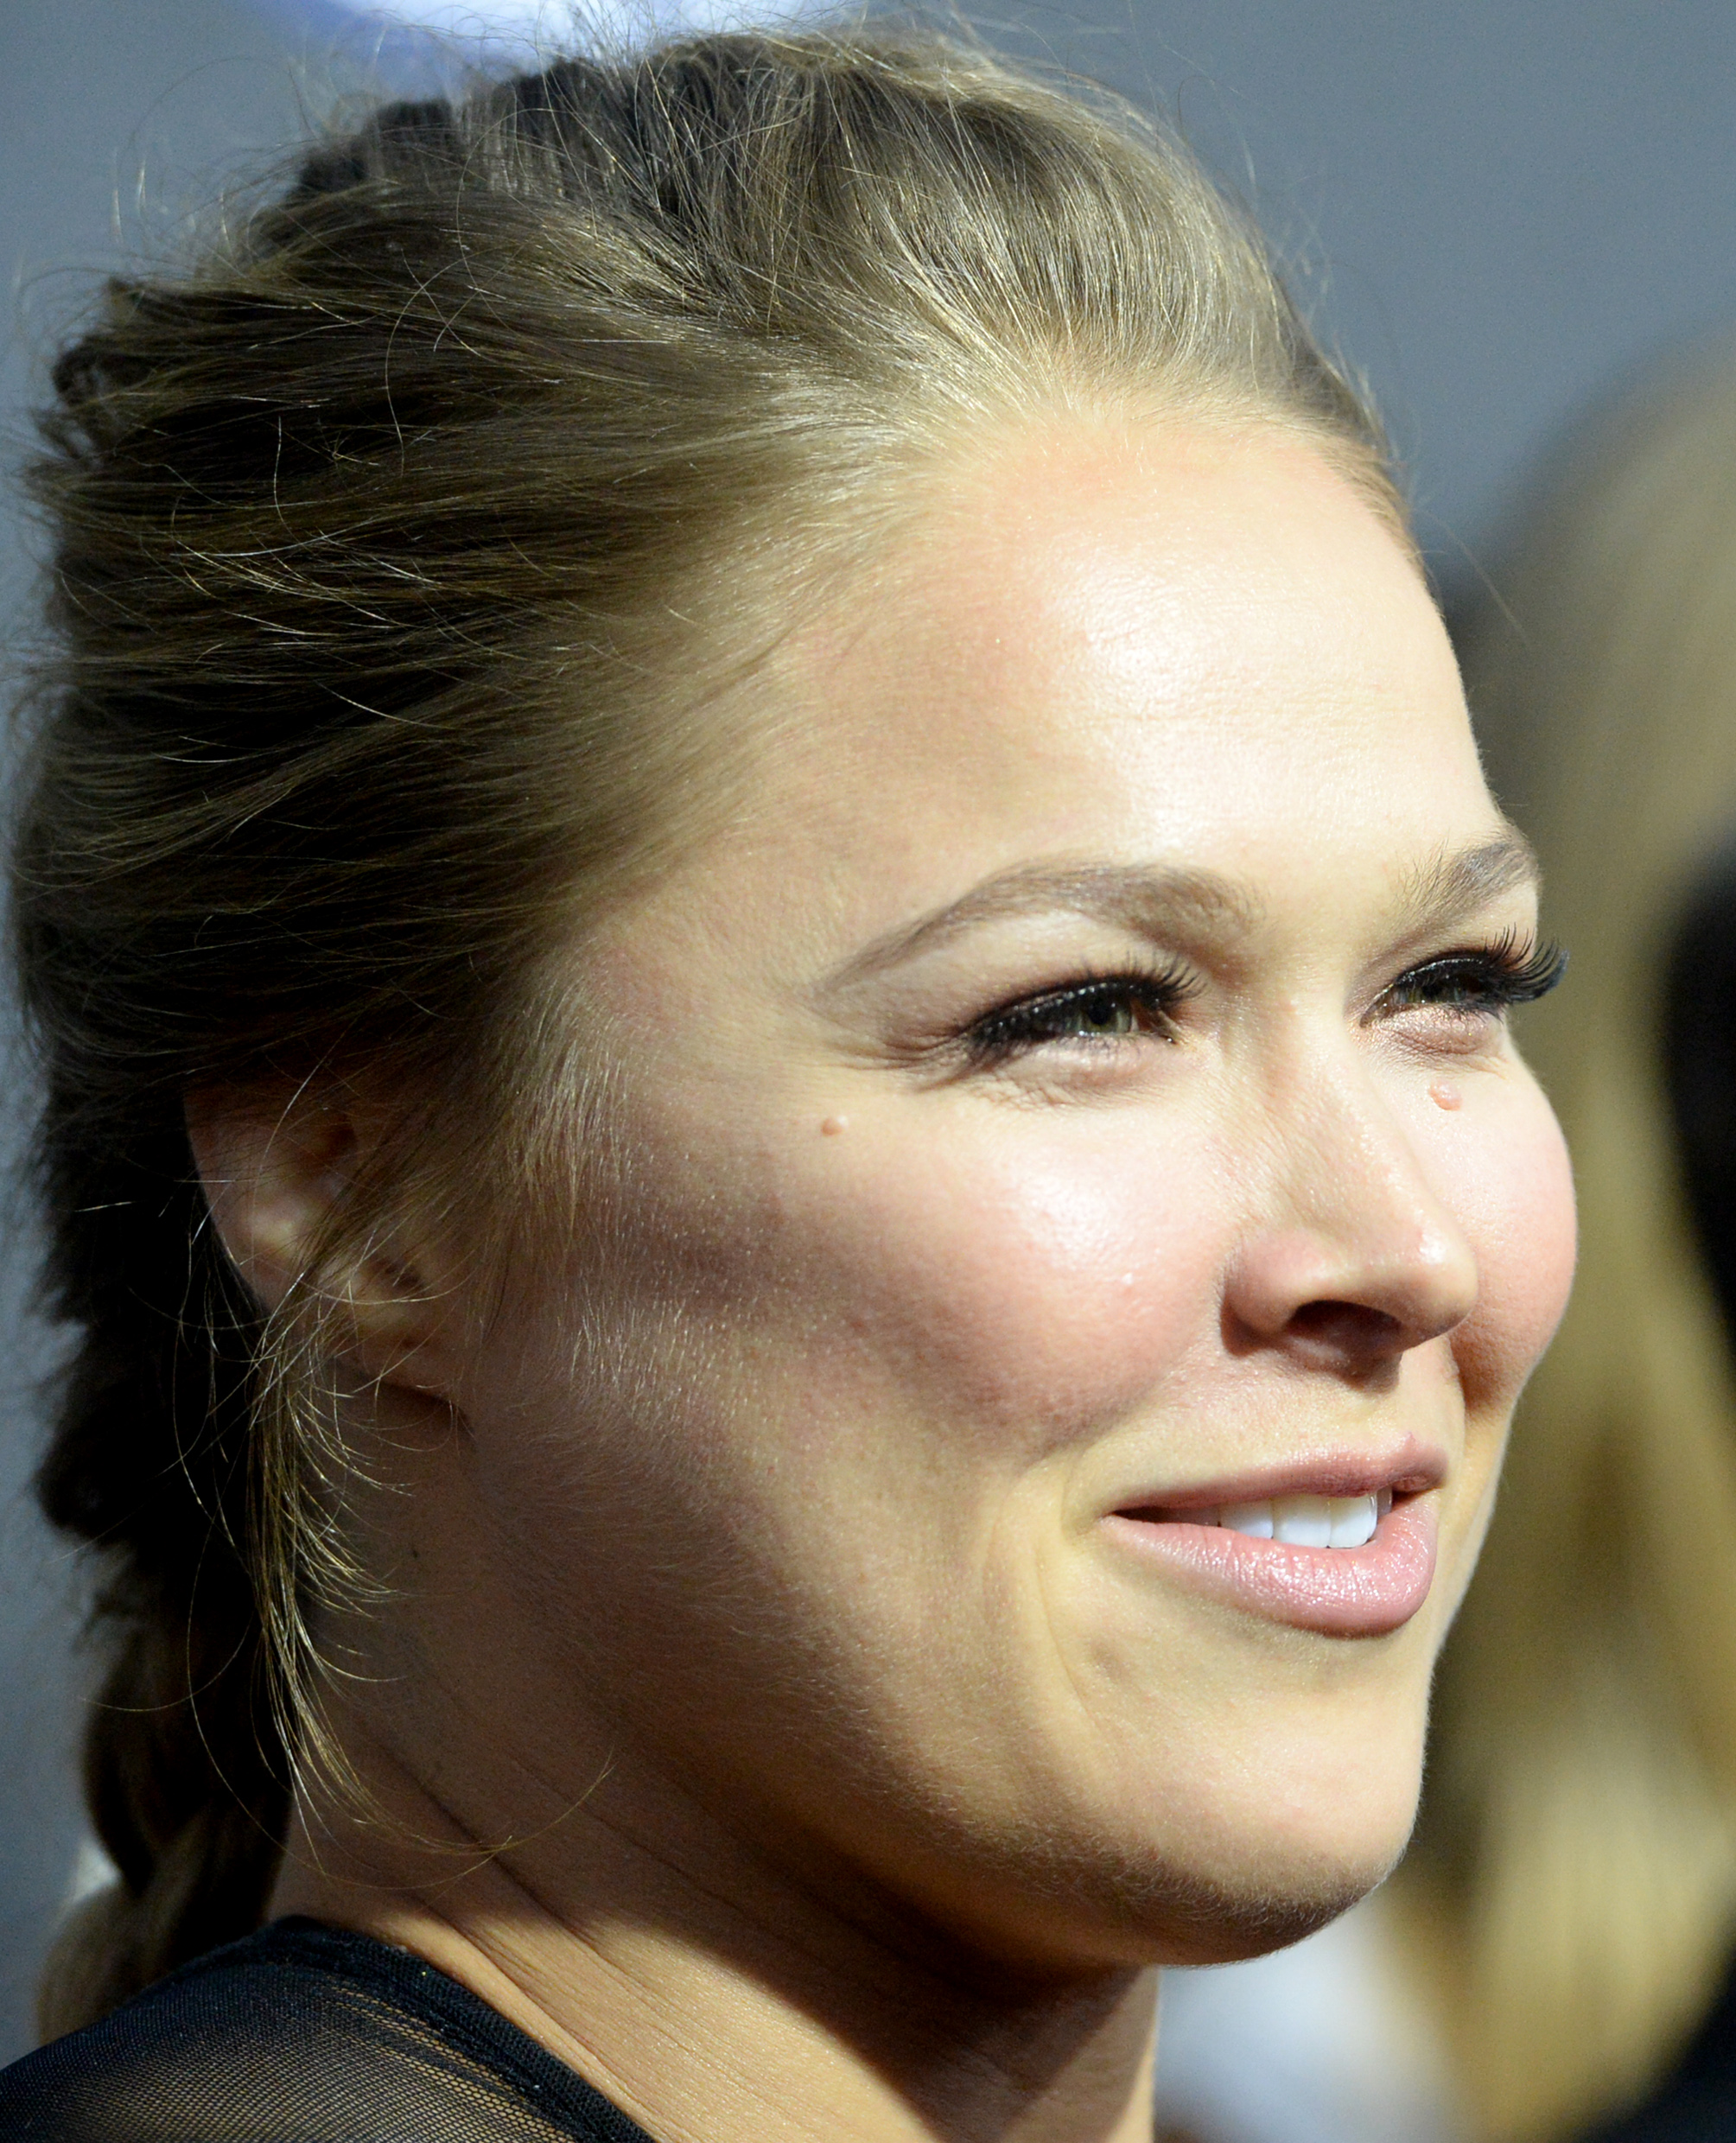 UFC women's bantamweight champion Ronda Rousey. (Jayne Kamin-Oncea-USA TODAY Sports)